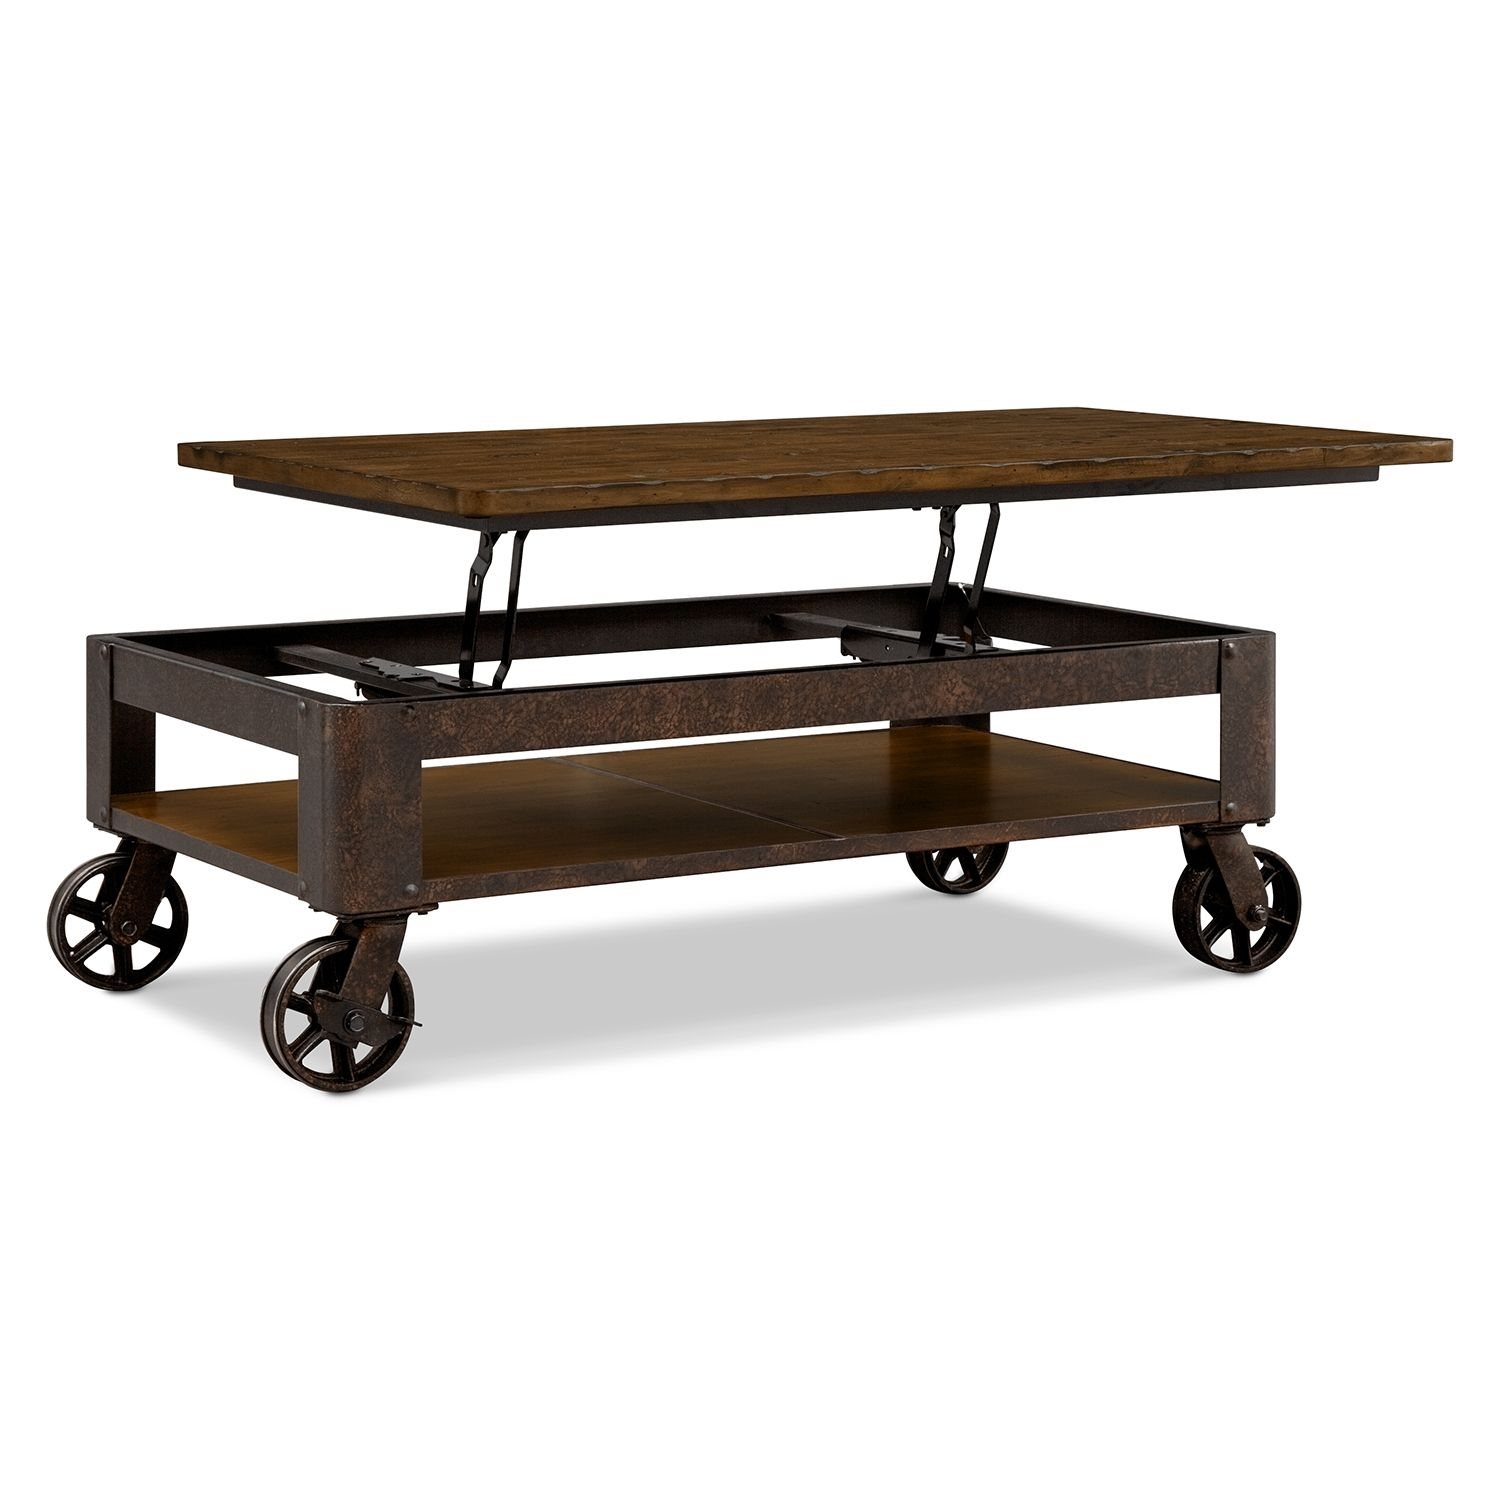 Seriously One Of My Favorite Tables Ever It 39 S Wonderfully Made Rustic Style There 39 S Storage